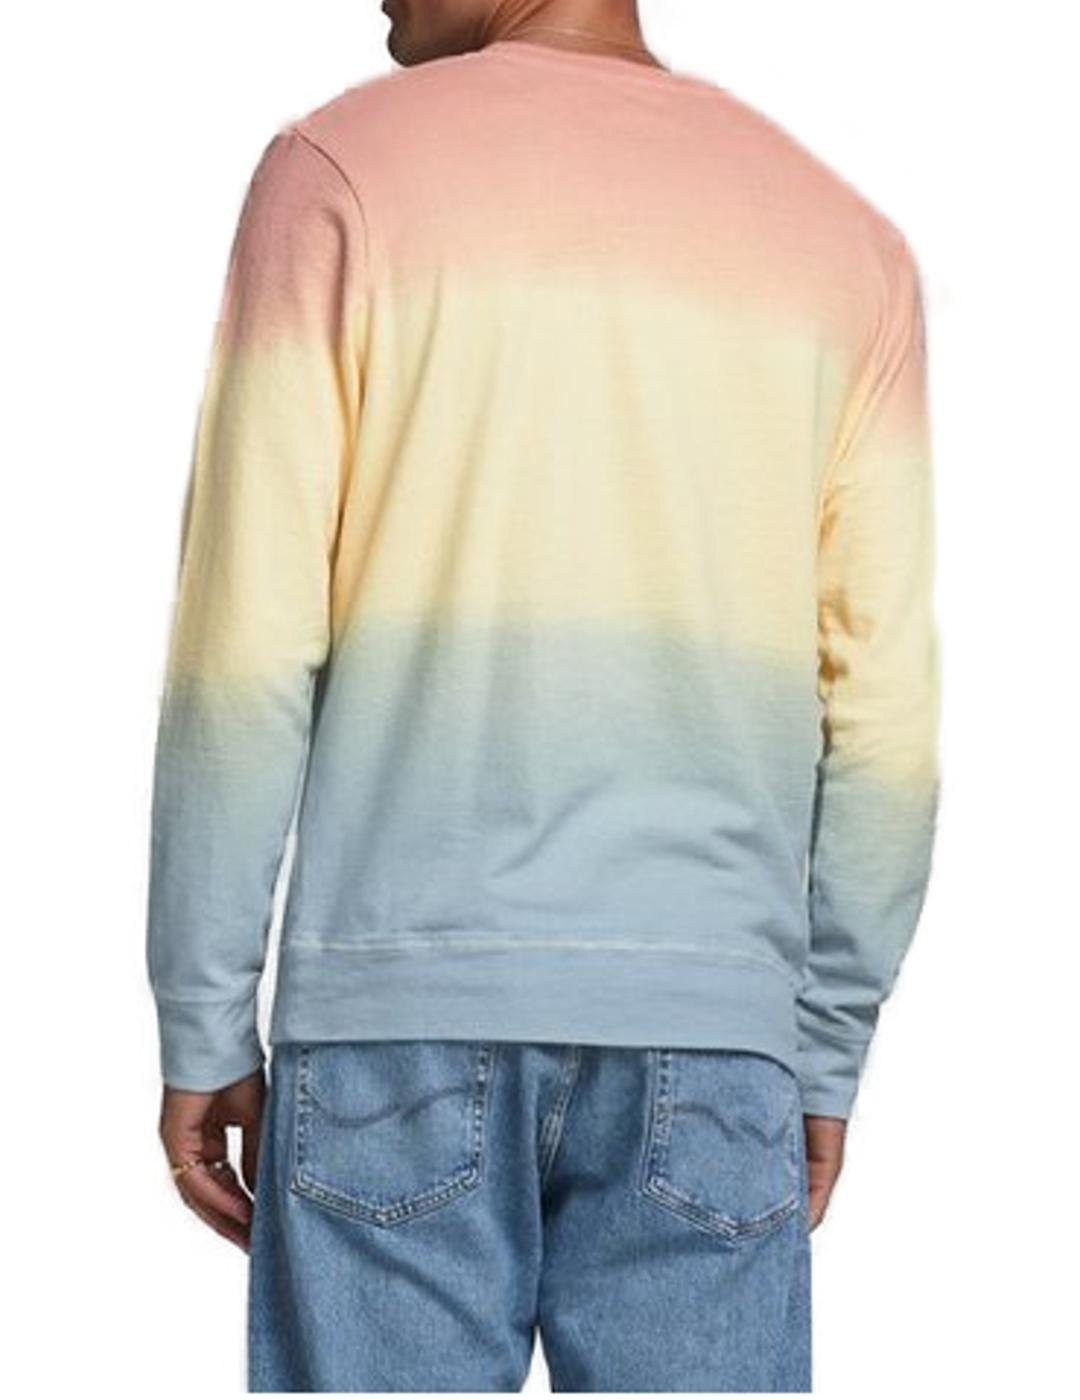 JORTIEDYE SWEAT CREW NECK FLAN-X